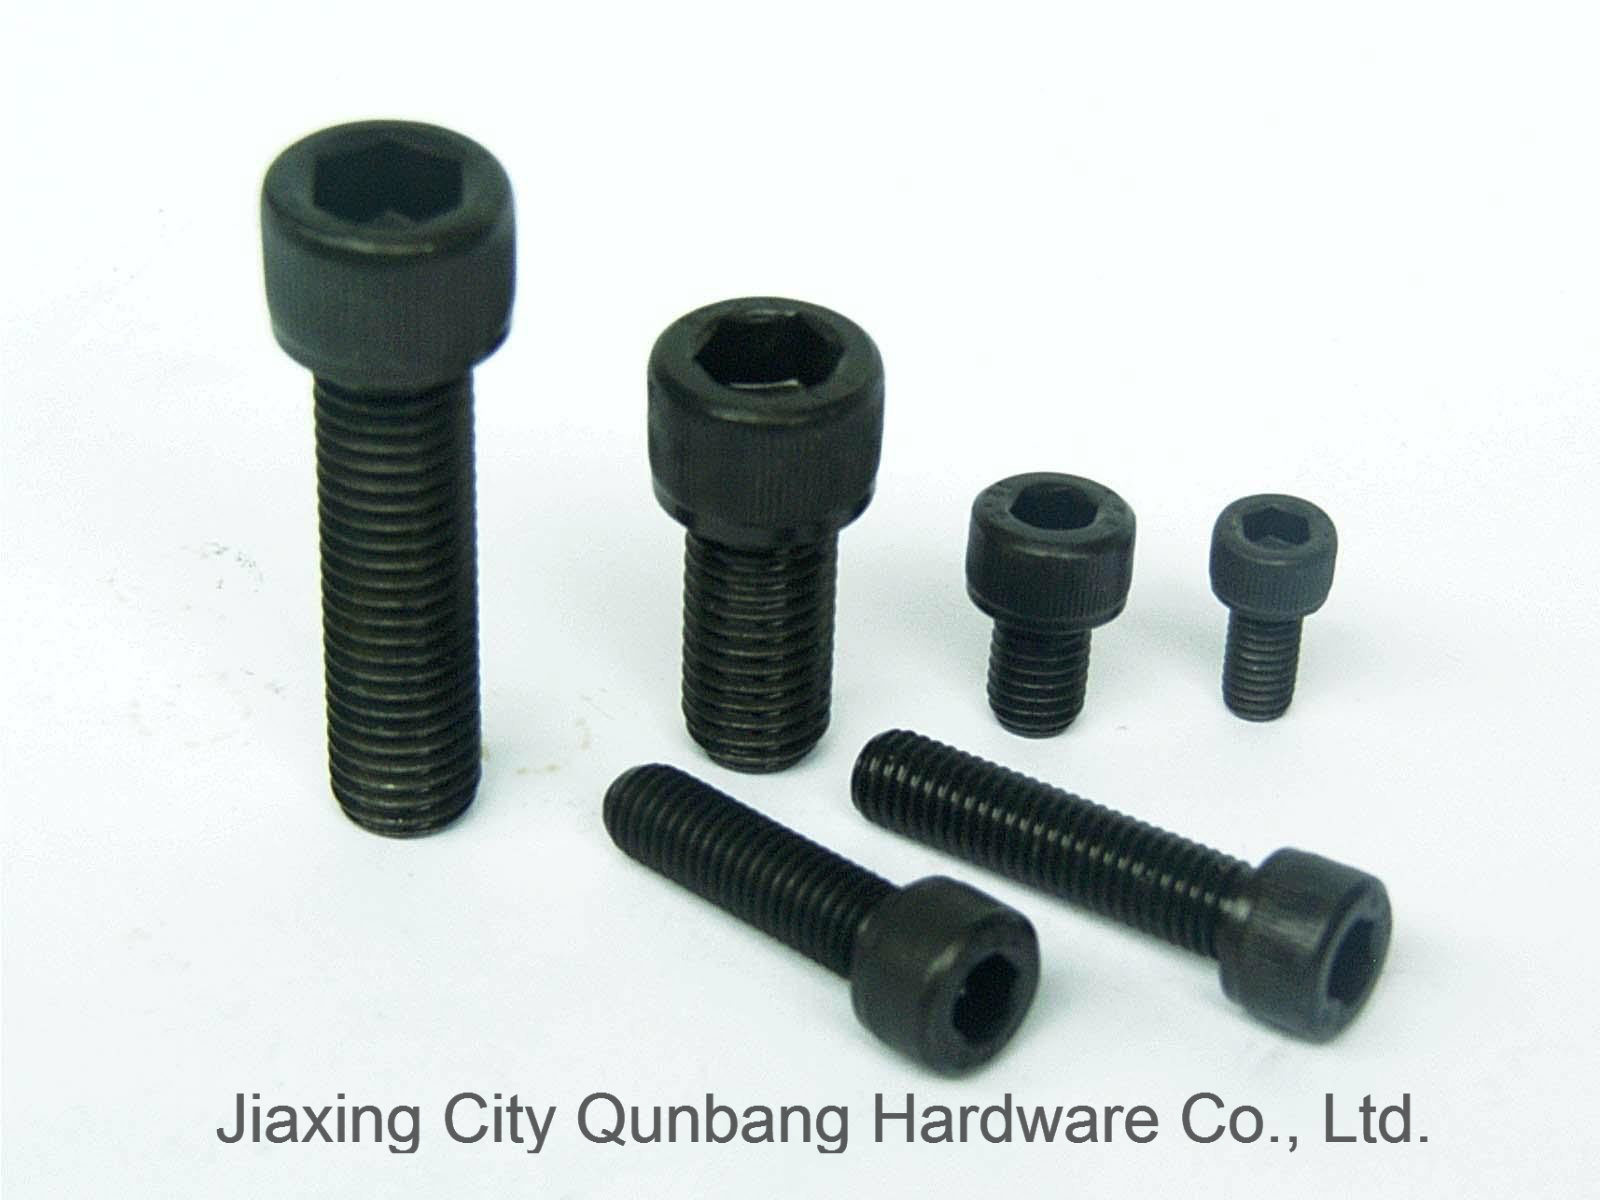 Hex Socket Head Cap Screw (Cl. 4.8/6.8/8.8/10.9/12.9 DIN912)